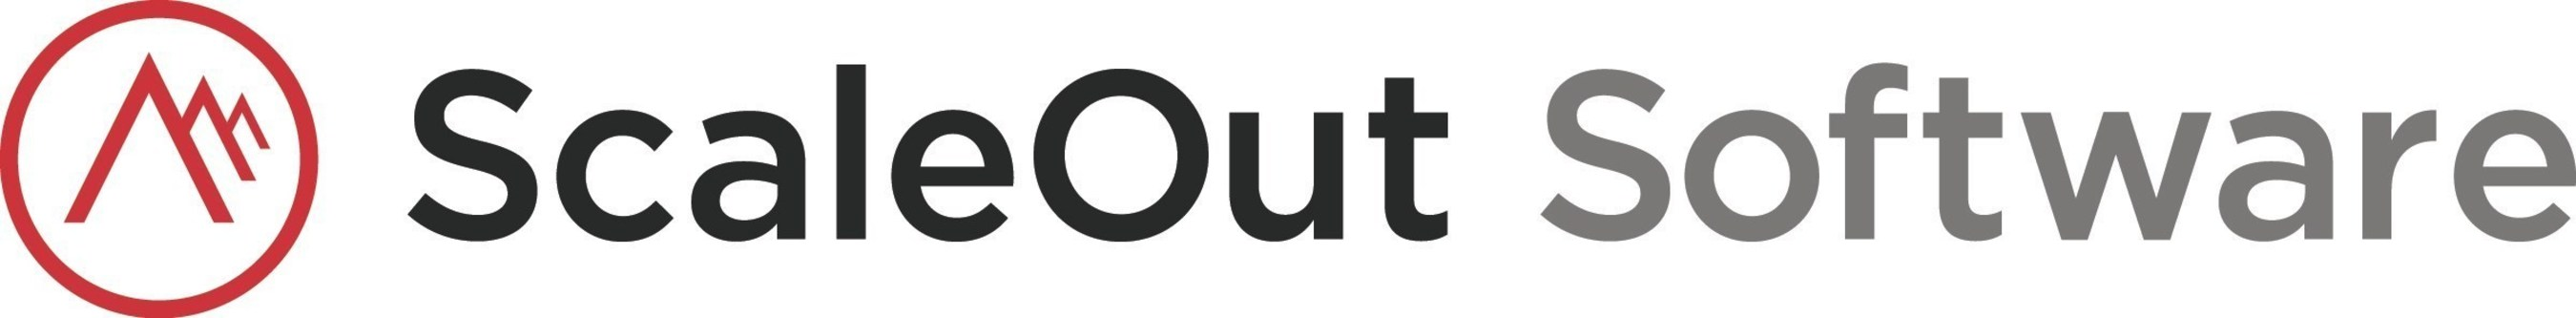 ScaleOut Software Logo